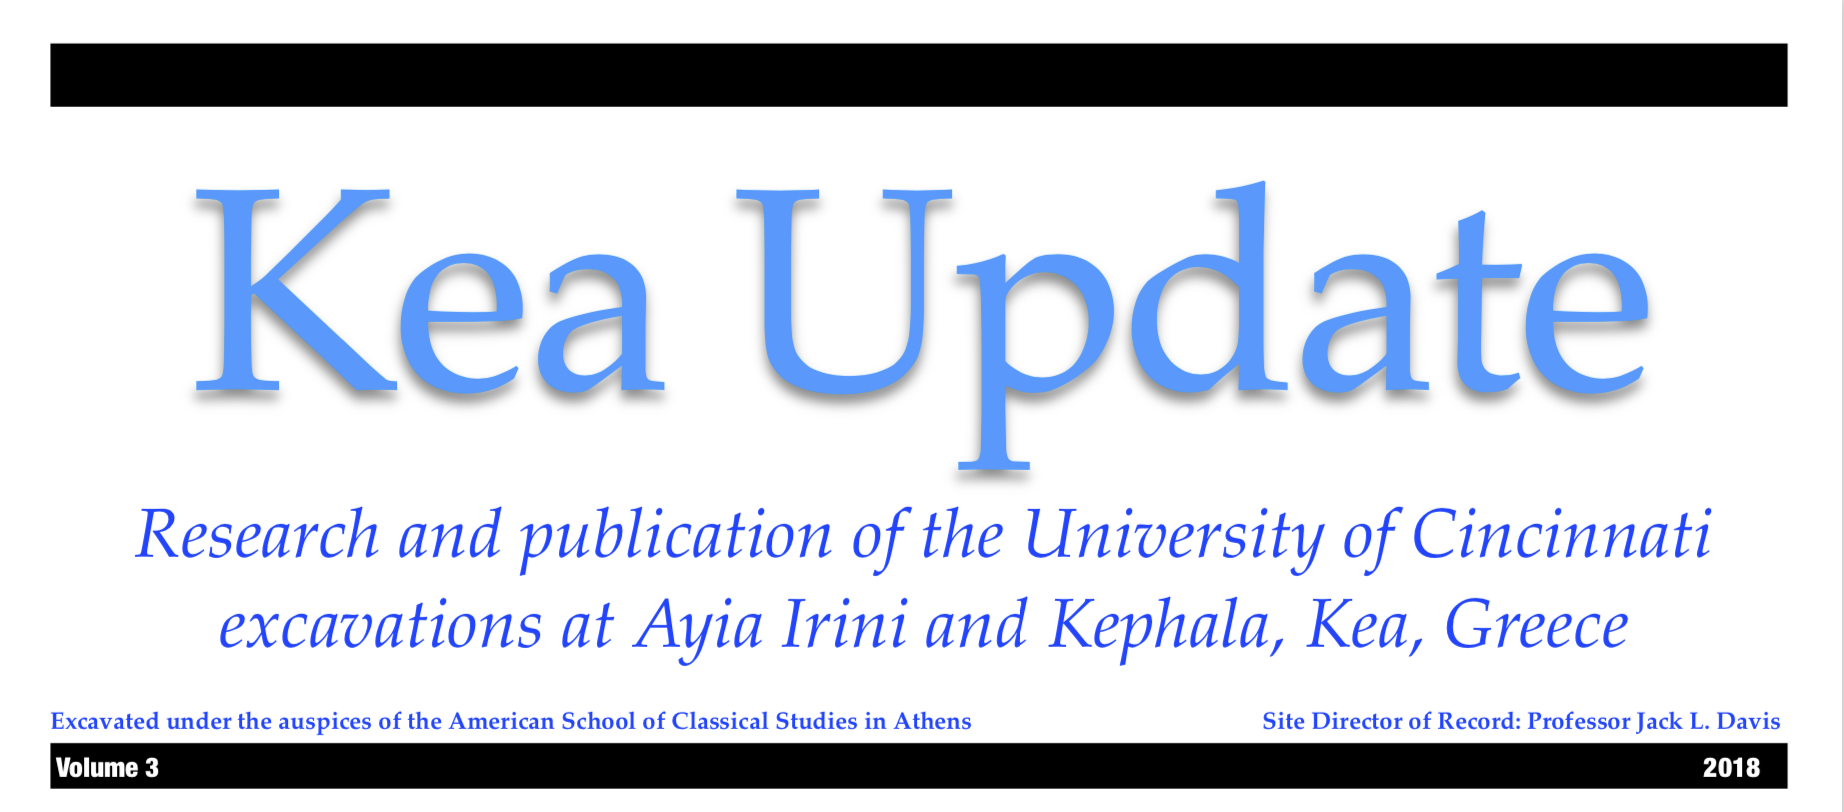 kea update newsletter title Research and publication of the University of Cincinnati excavations at Ayia Irini and Kephala, Kea, Greece